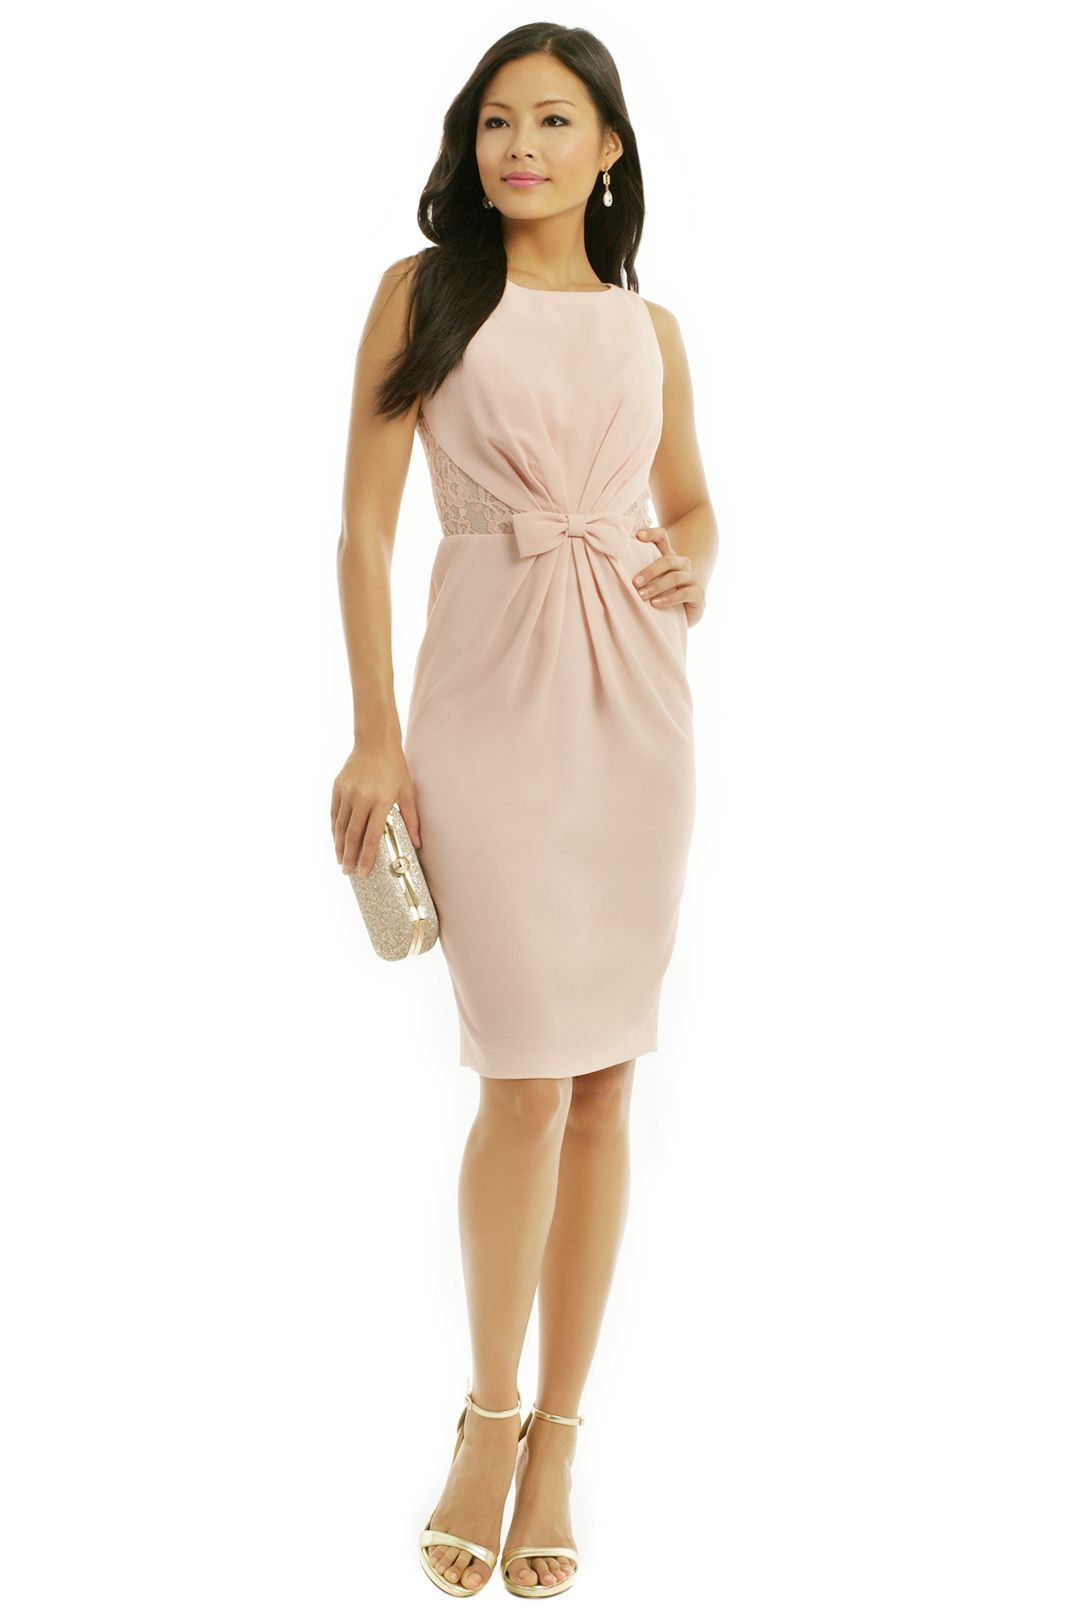 Rent he makes me blush dress by badgley mischka for 55 only at badgley mischka he makes me blush dress pale blush pink bridesmaid dress ombrellifo Gallery